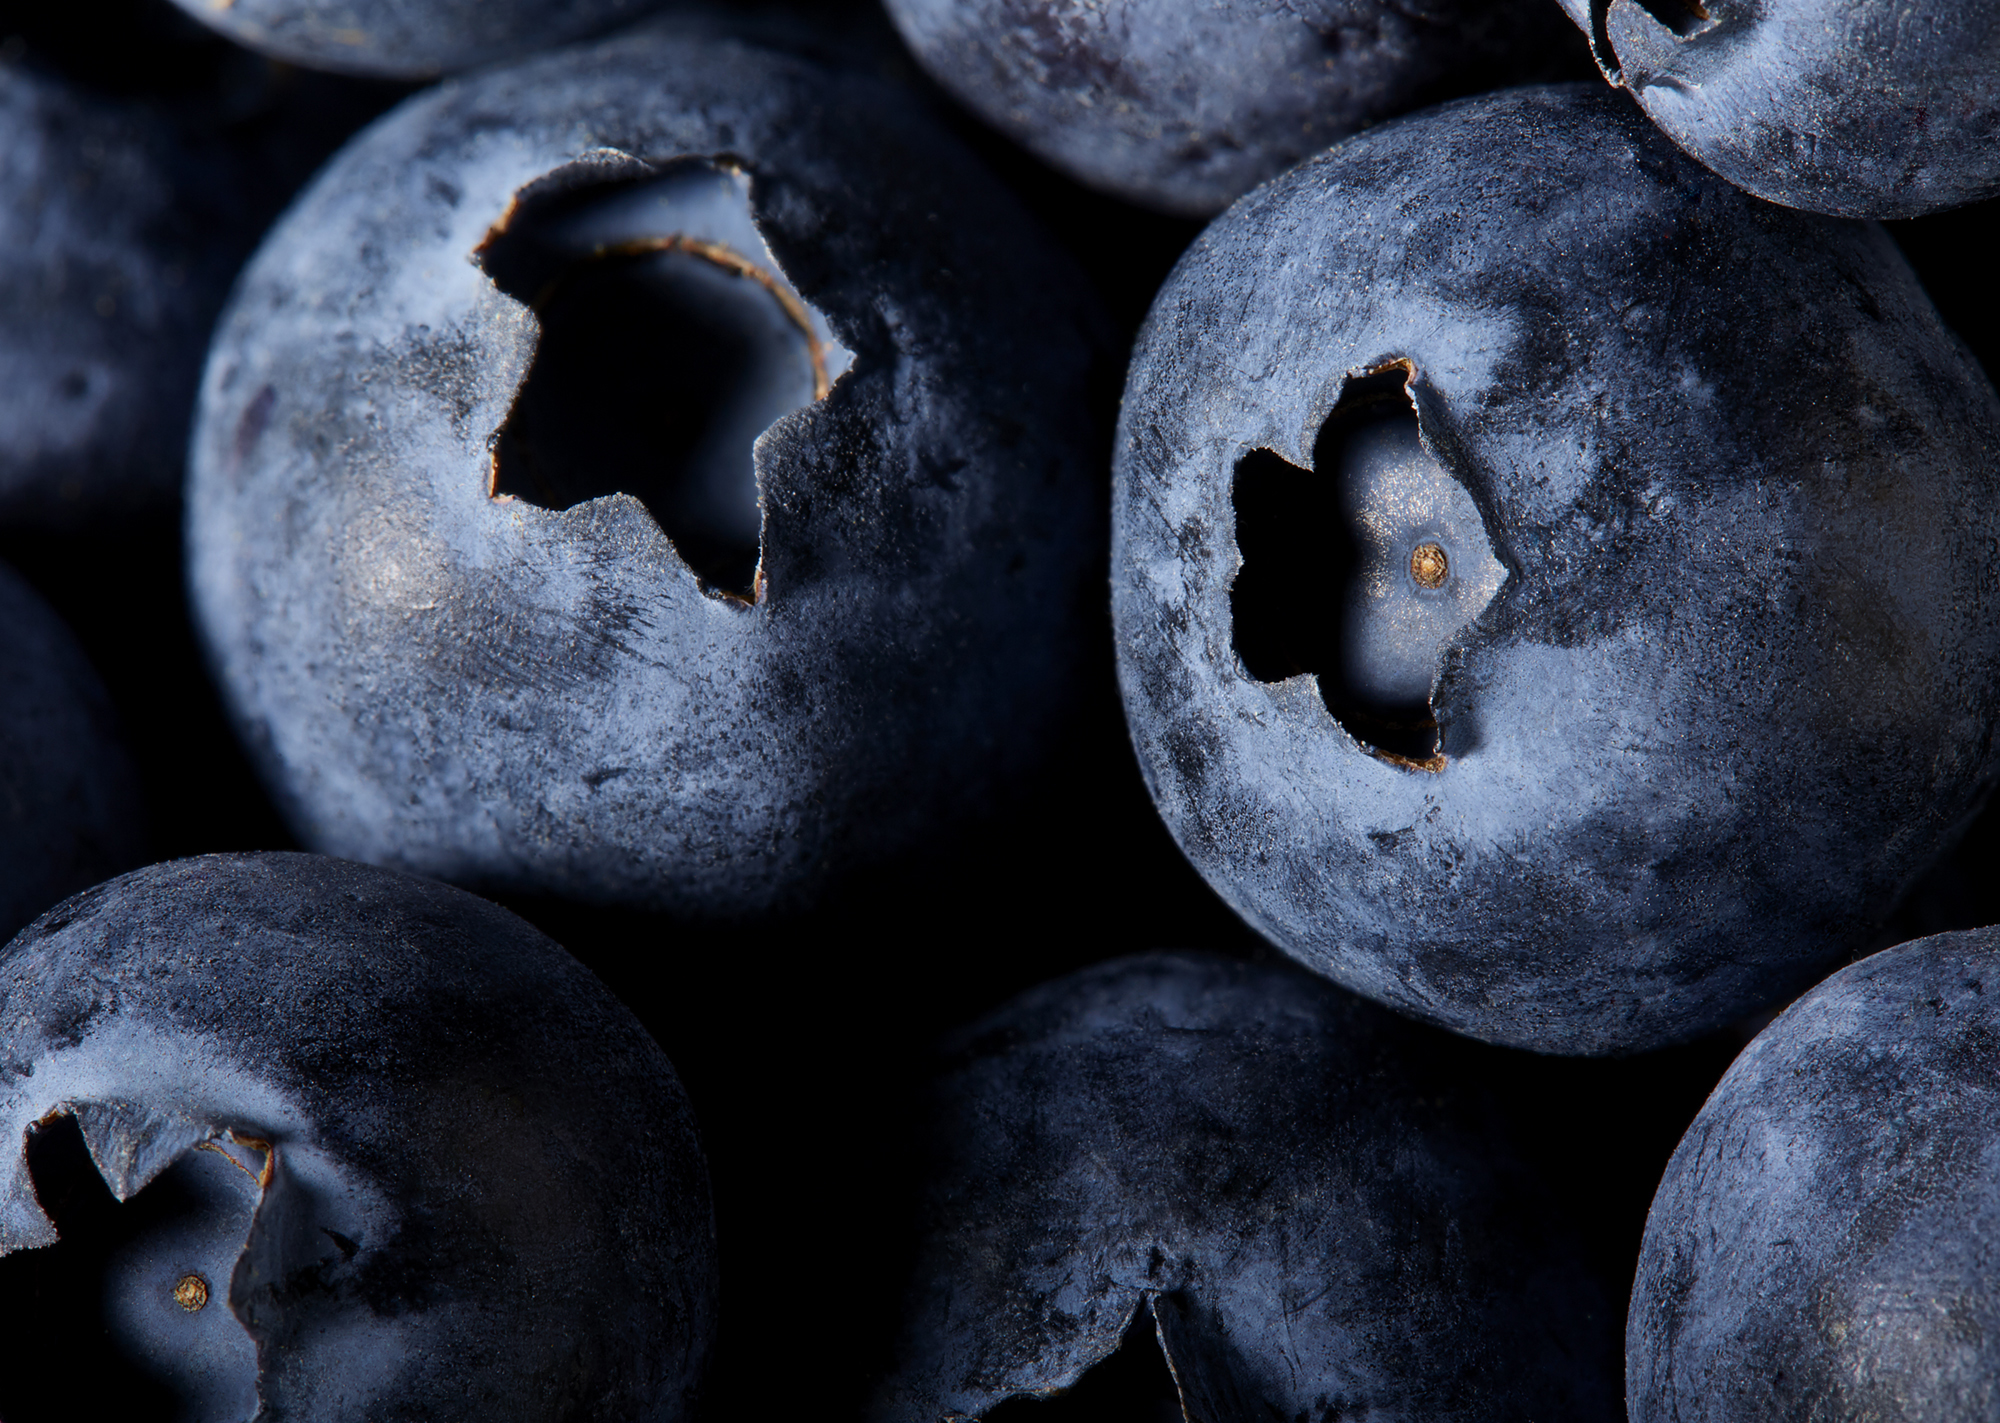 Hilary-Moore-Food-Photography-blueberries-slideshow.jpg